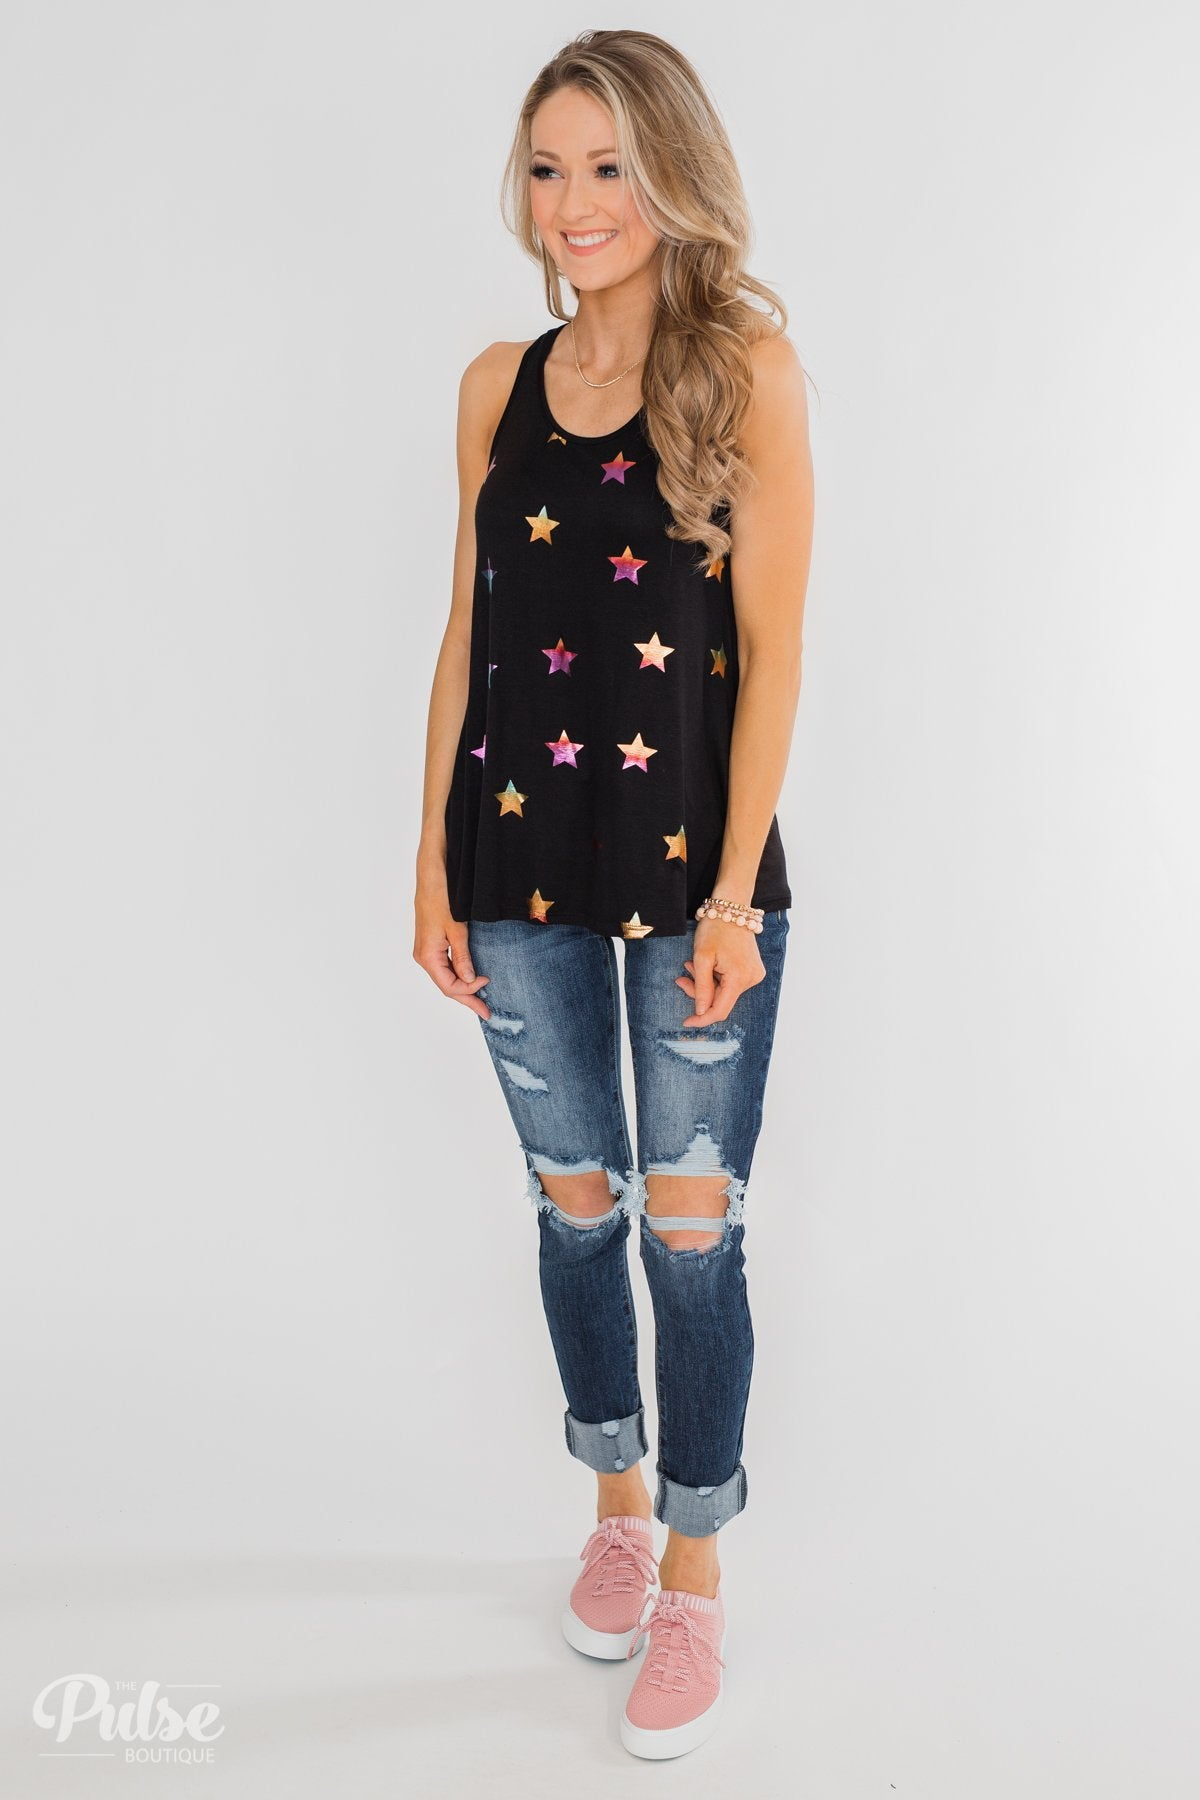 Sparkle For You Star Racerback Tank Top- Black